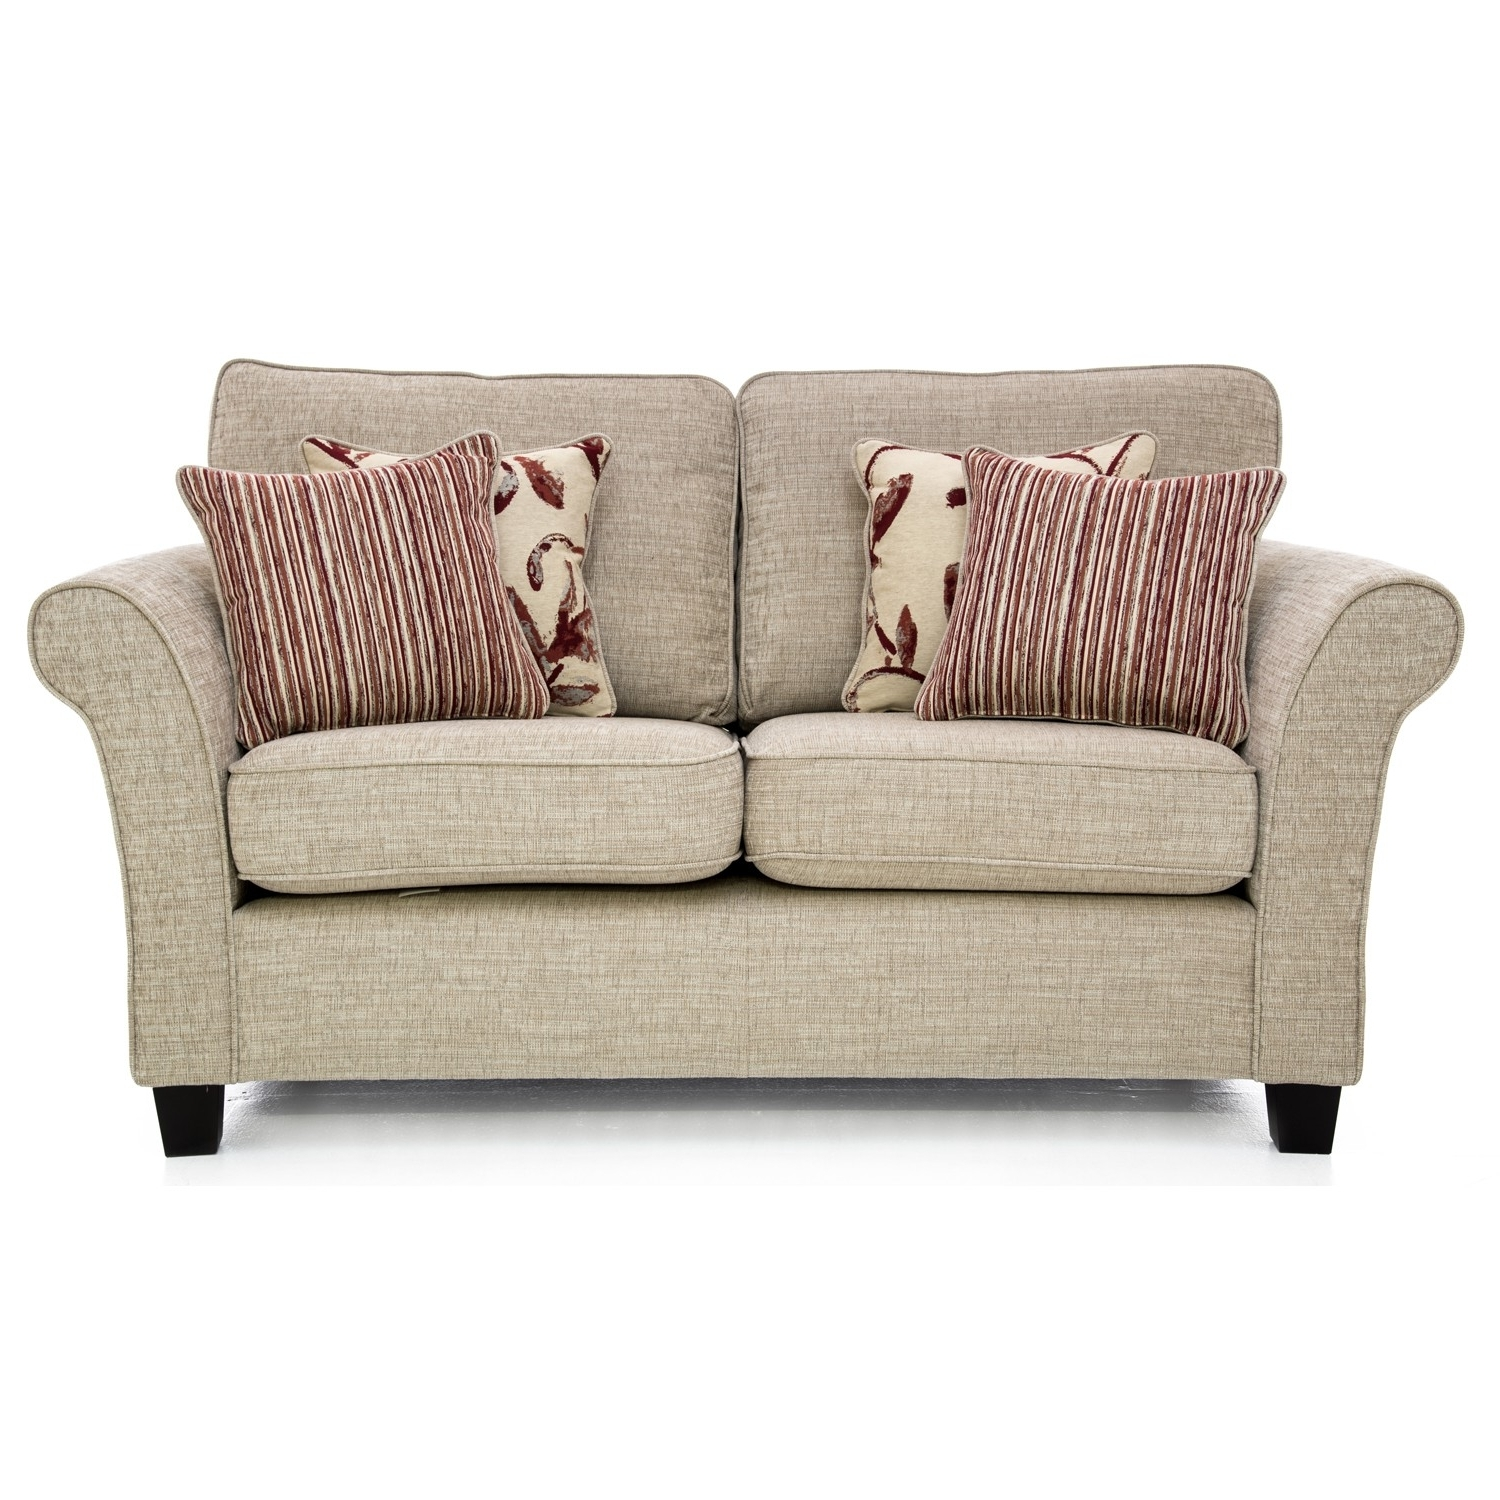 Small 2 Seater Sofas In Best And Newest Fancy Small 2 Seater Sofa 50 Modern Sofa Inspiration With Small  (View 10 of 15)